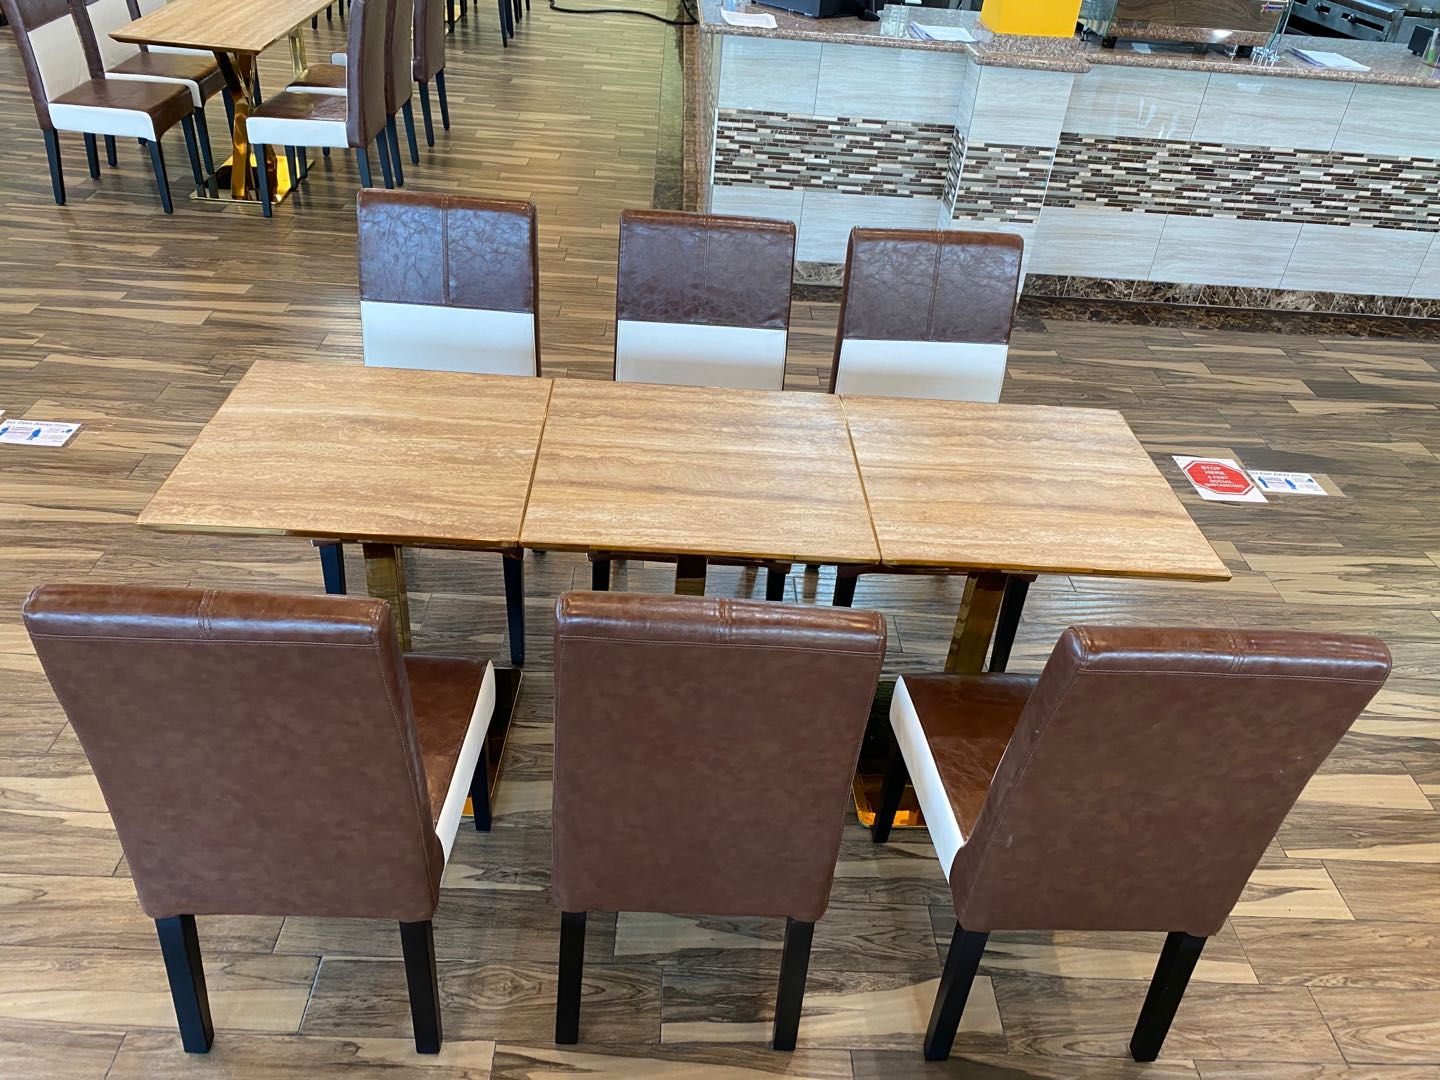 Customize wooden restaurant booth seating sofa bench with table sets